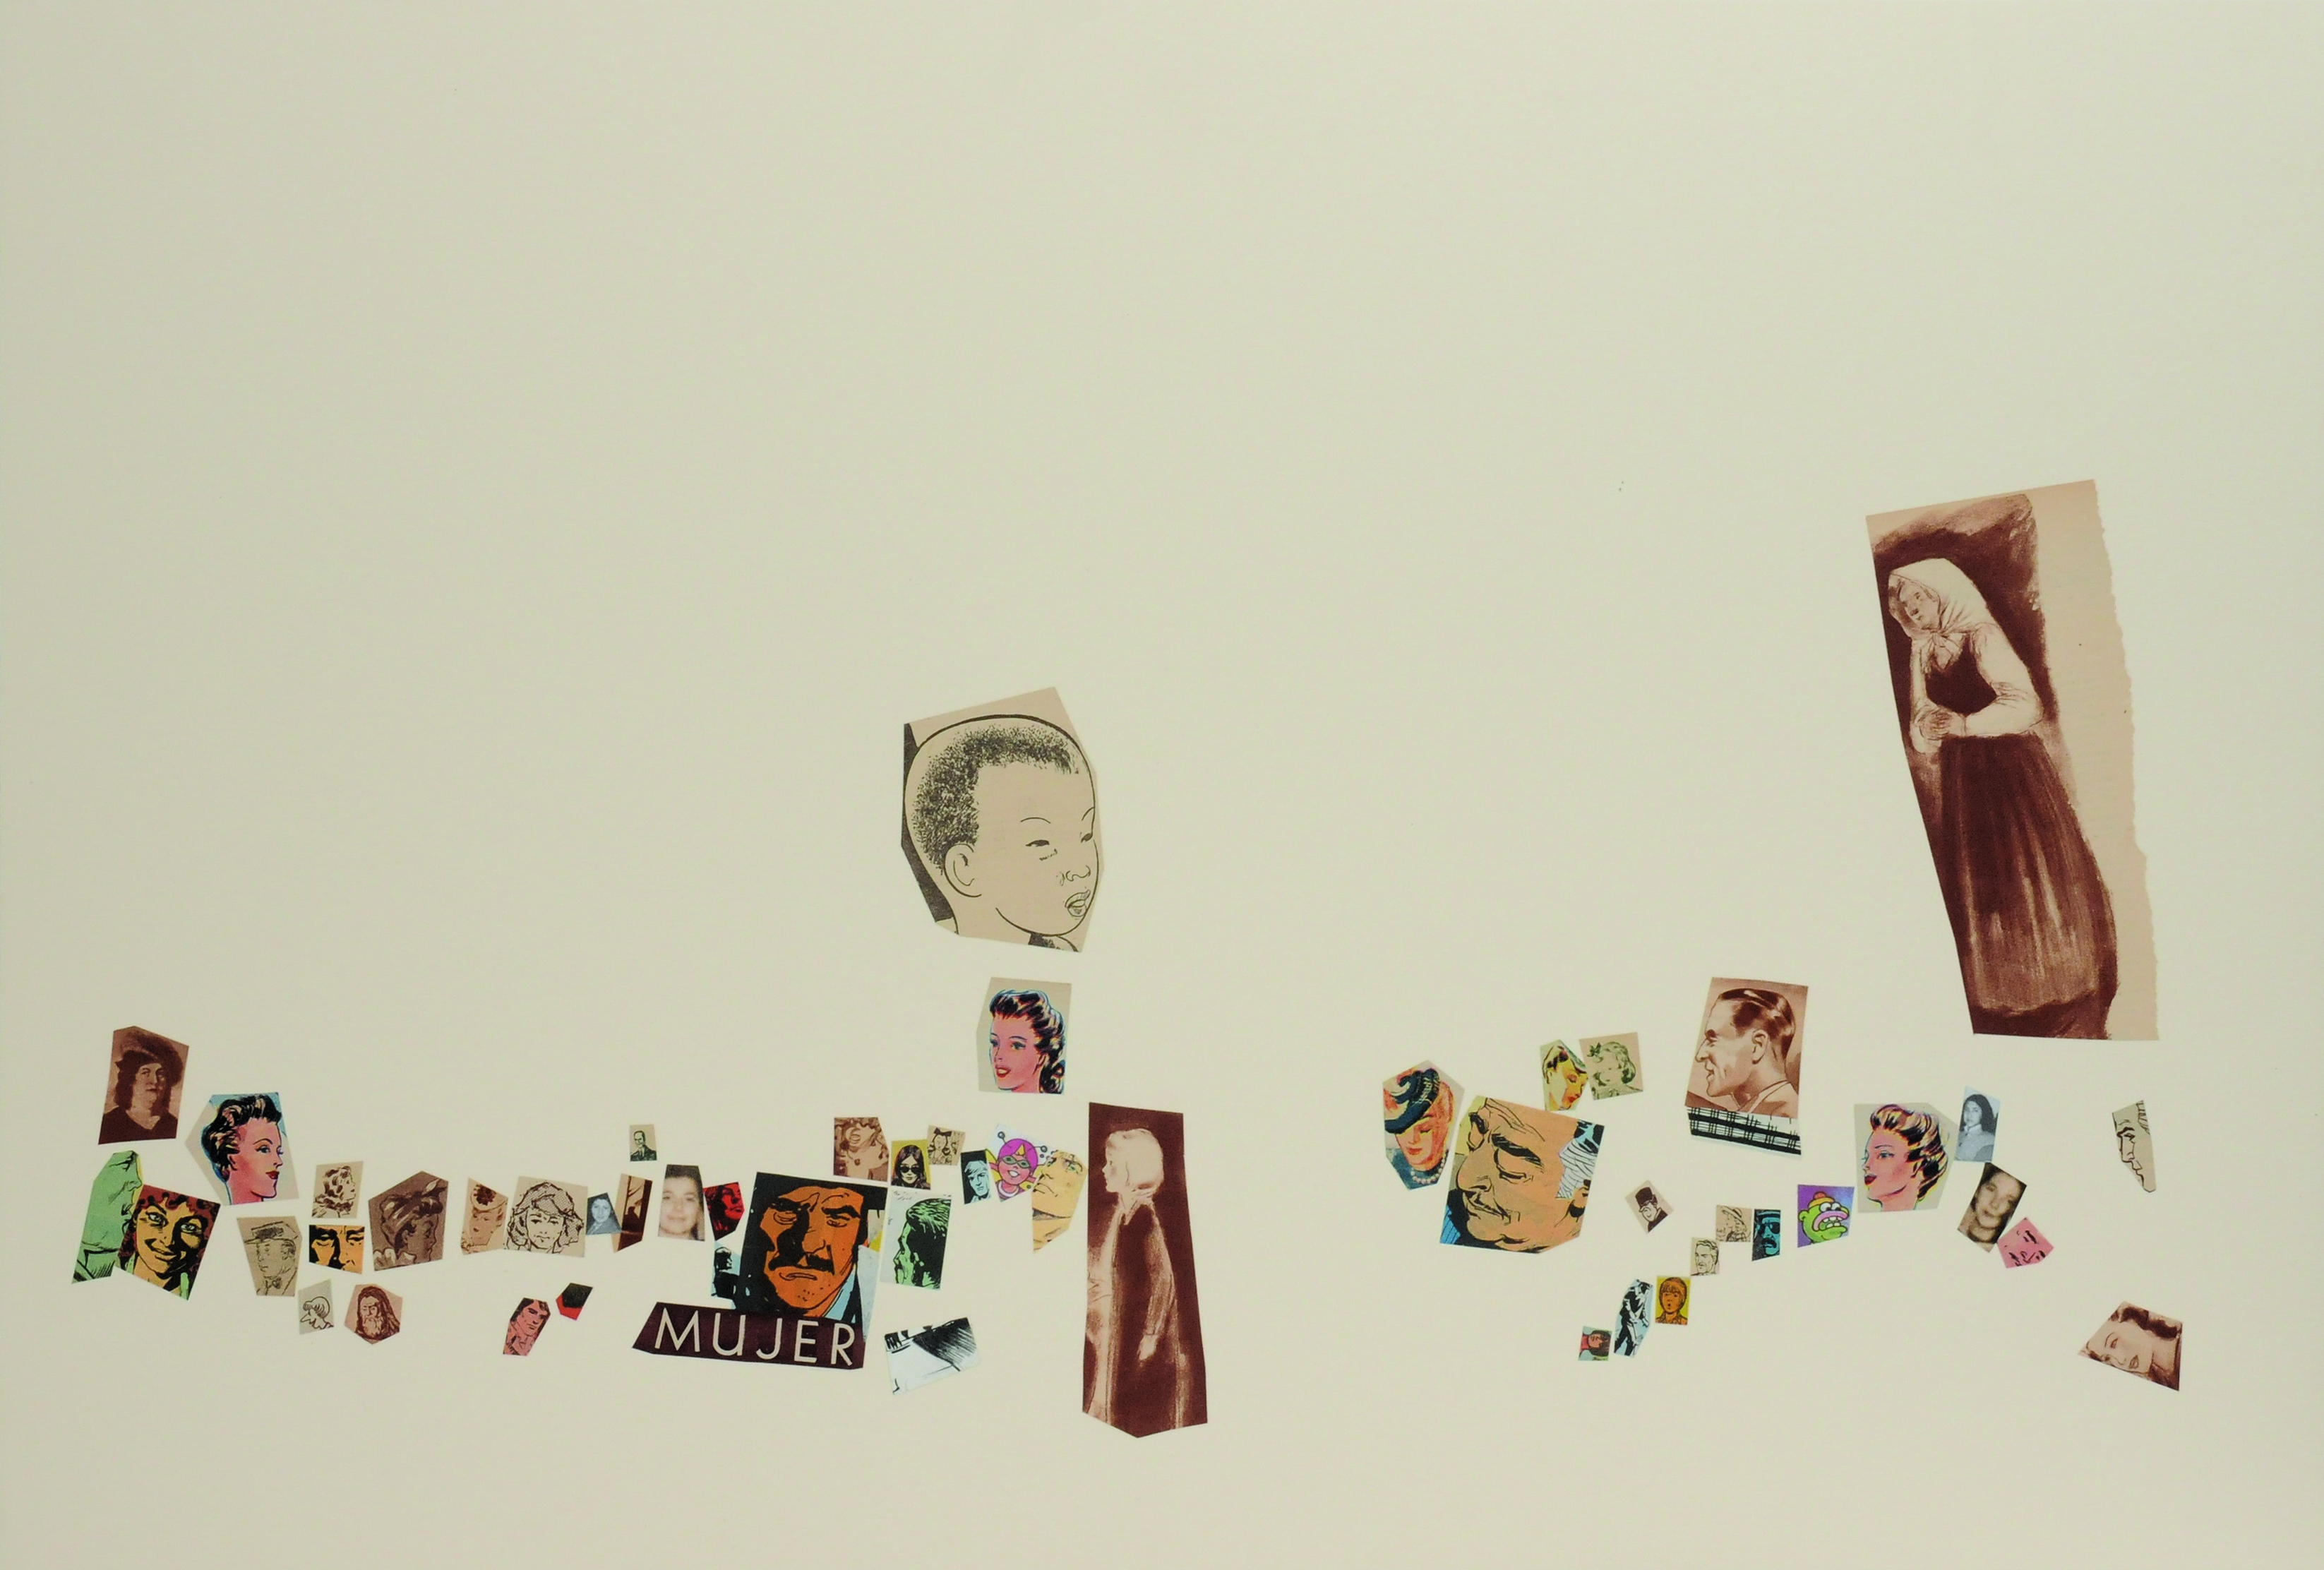 Mujer, papel collage, 51 cm x 76 cm. 2008